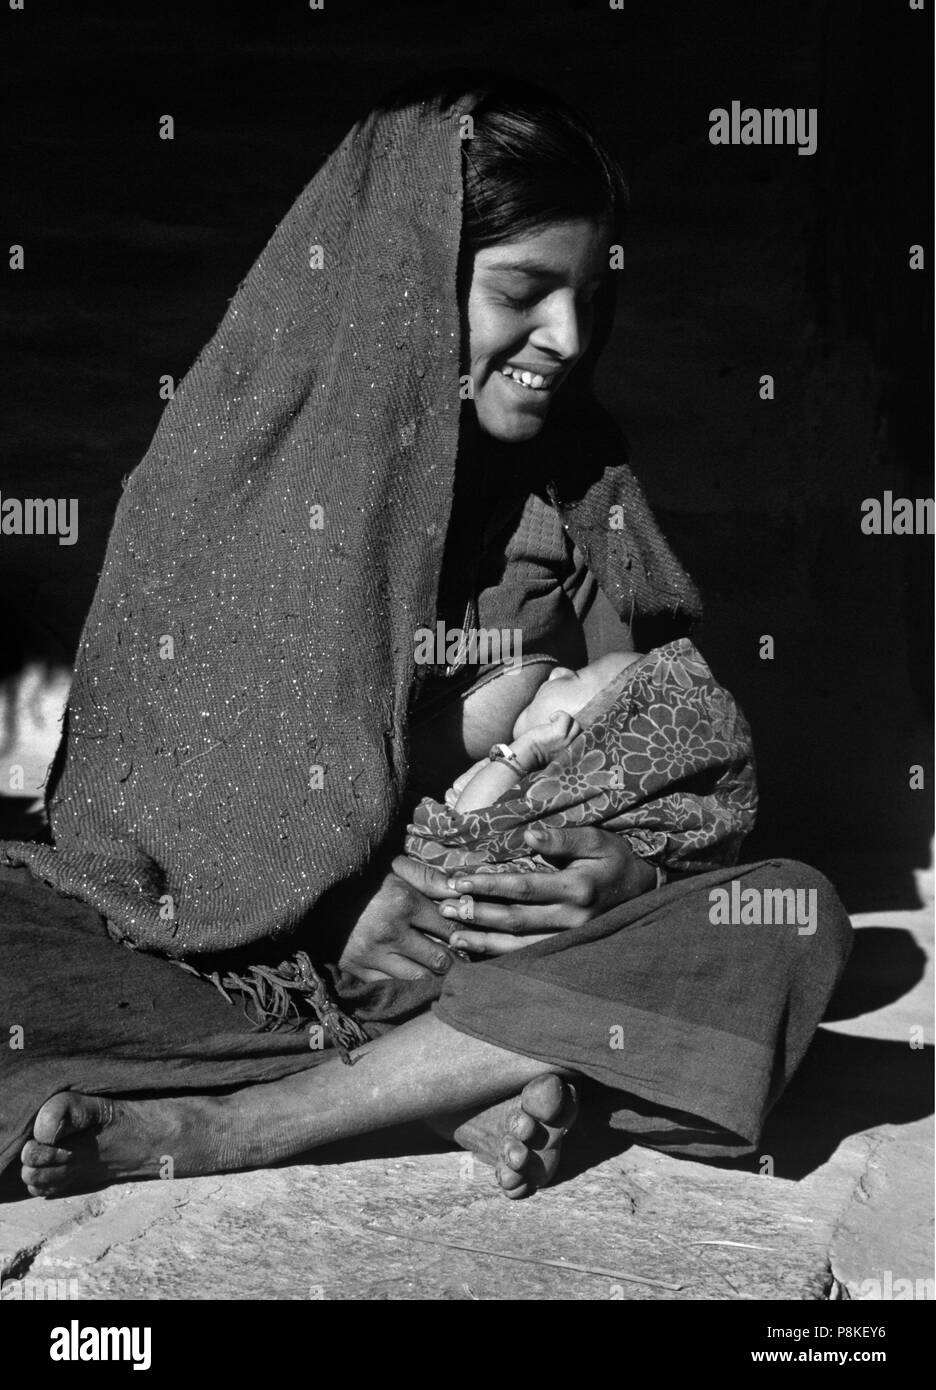 A NEPALI WOMAN of the CHETRI tribe NURSES her BABY - ANNAPURNA REGION,  NEPAL Stock Photo